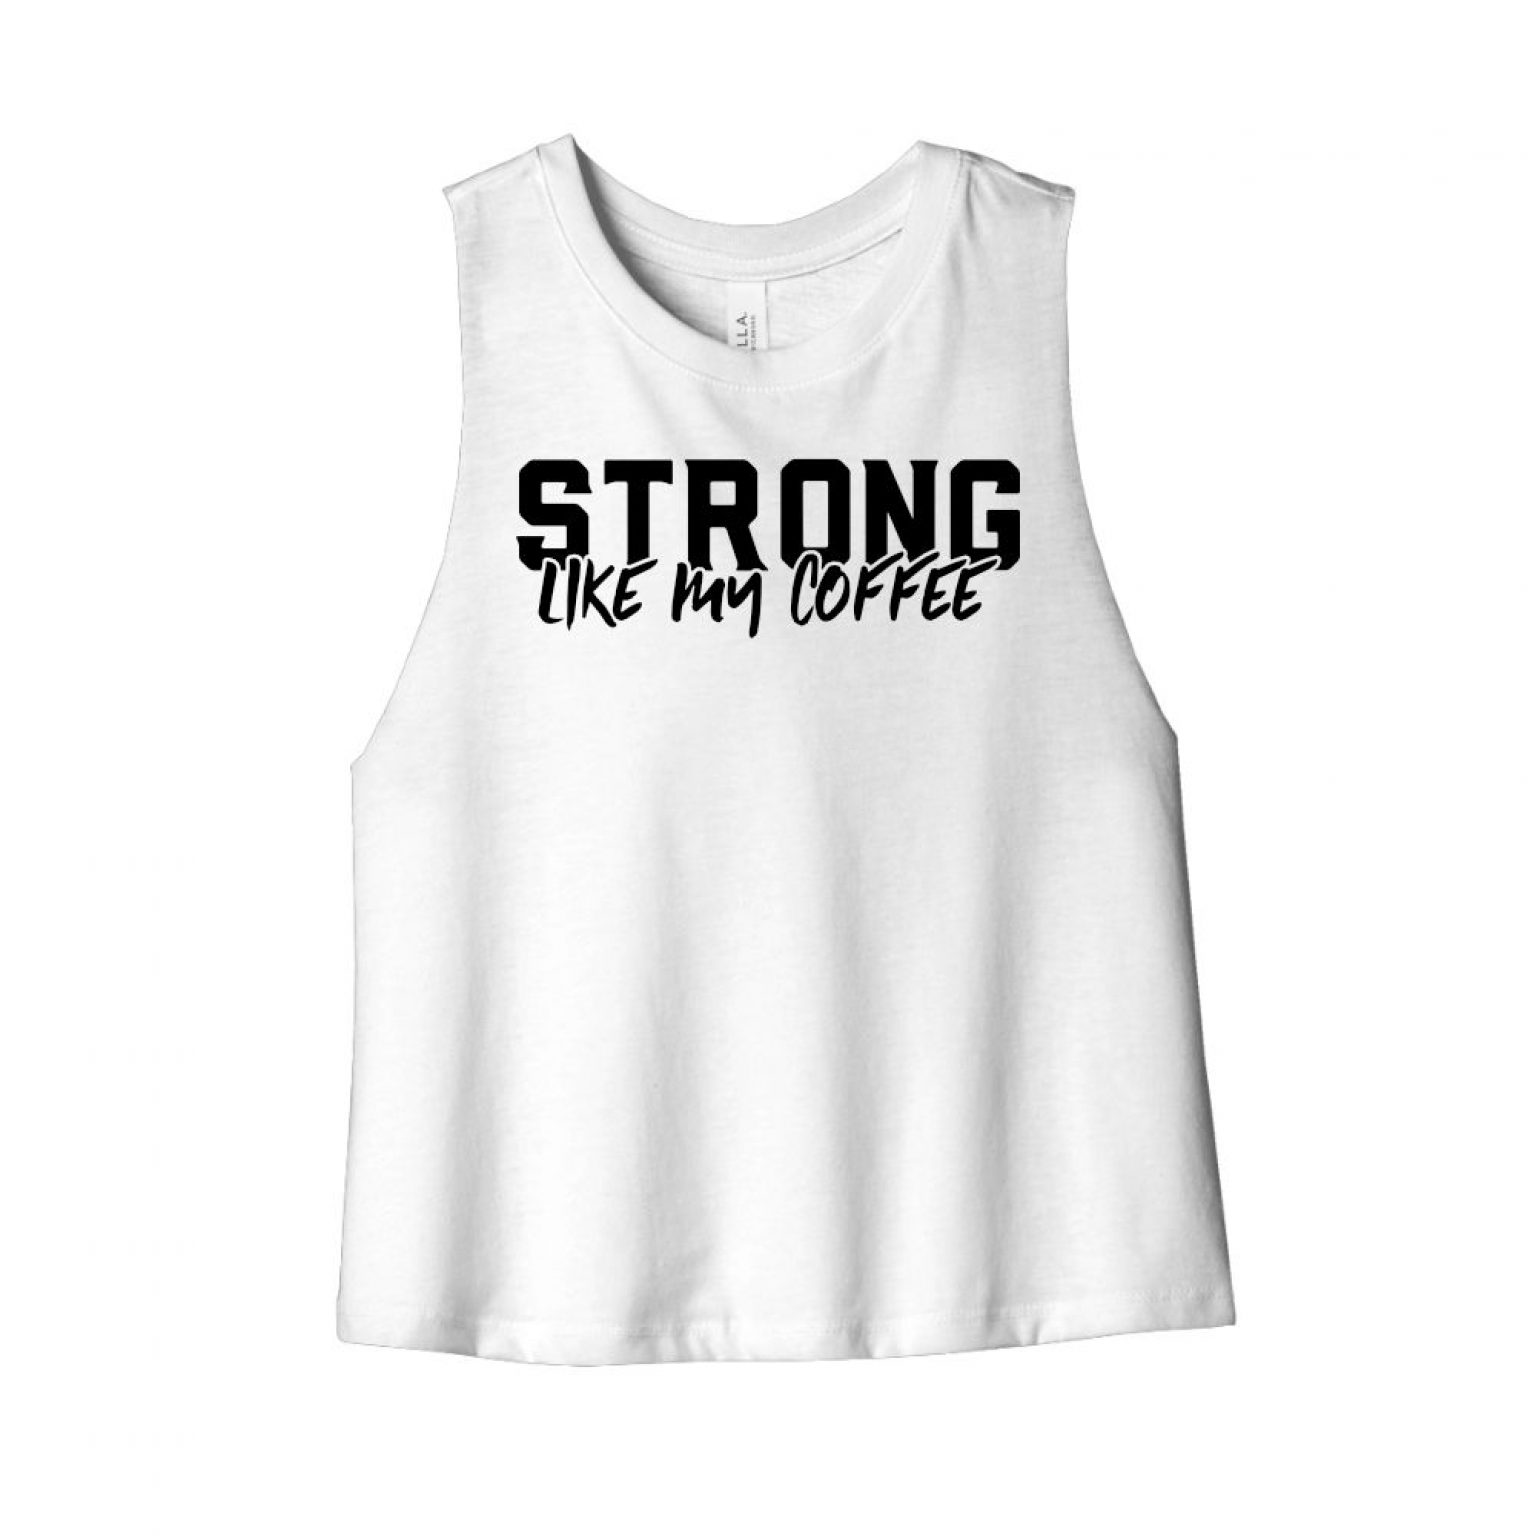 strongcoffe cropped weiss front